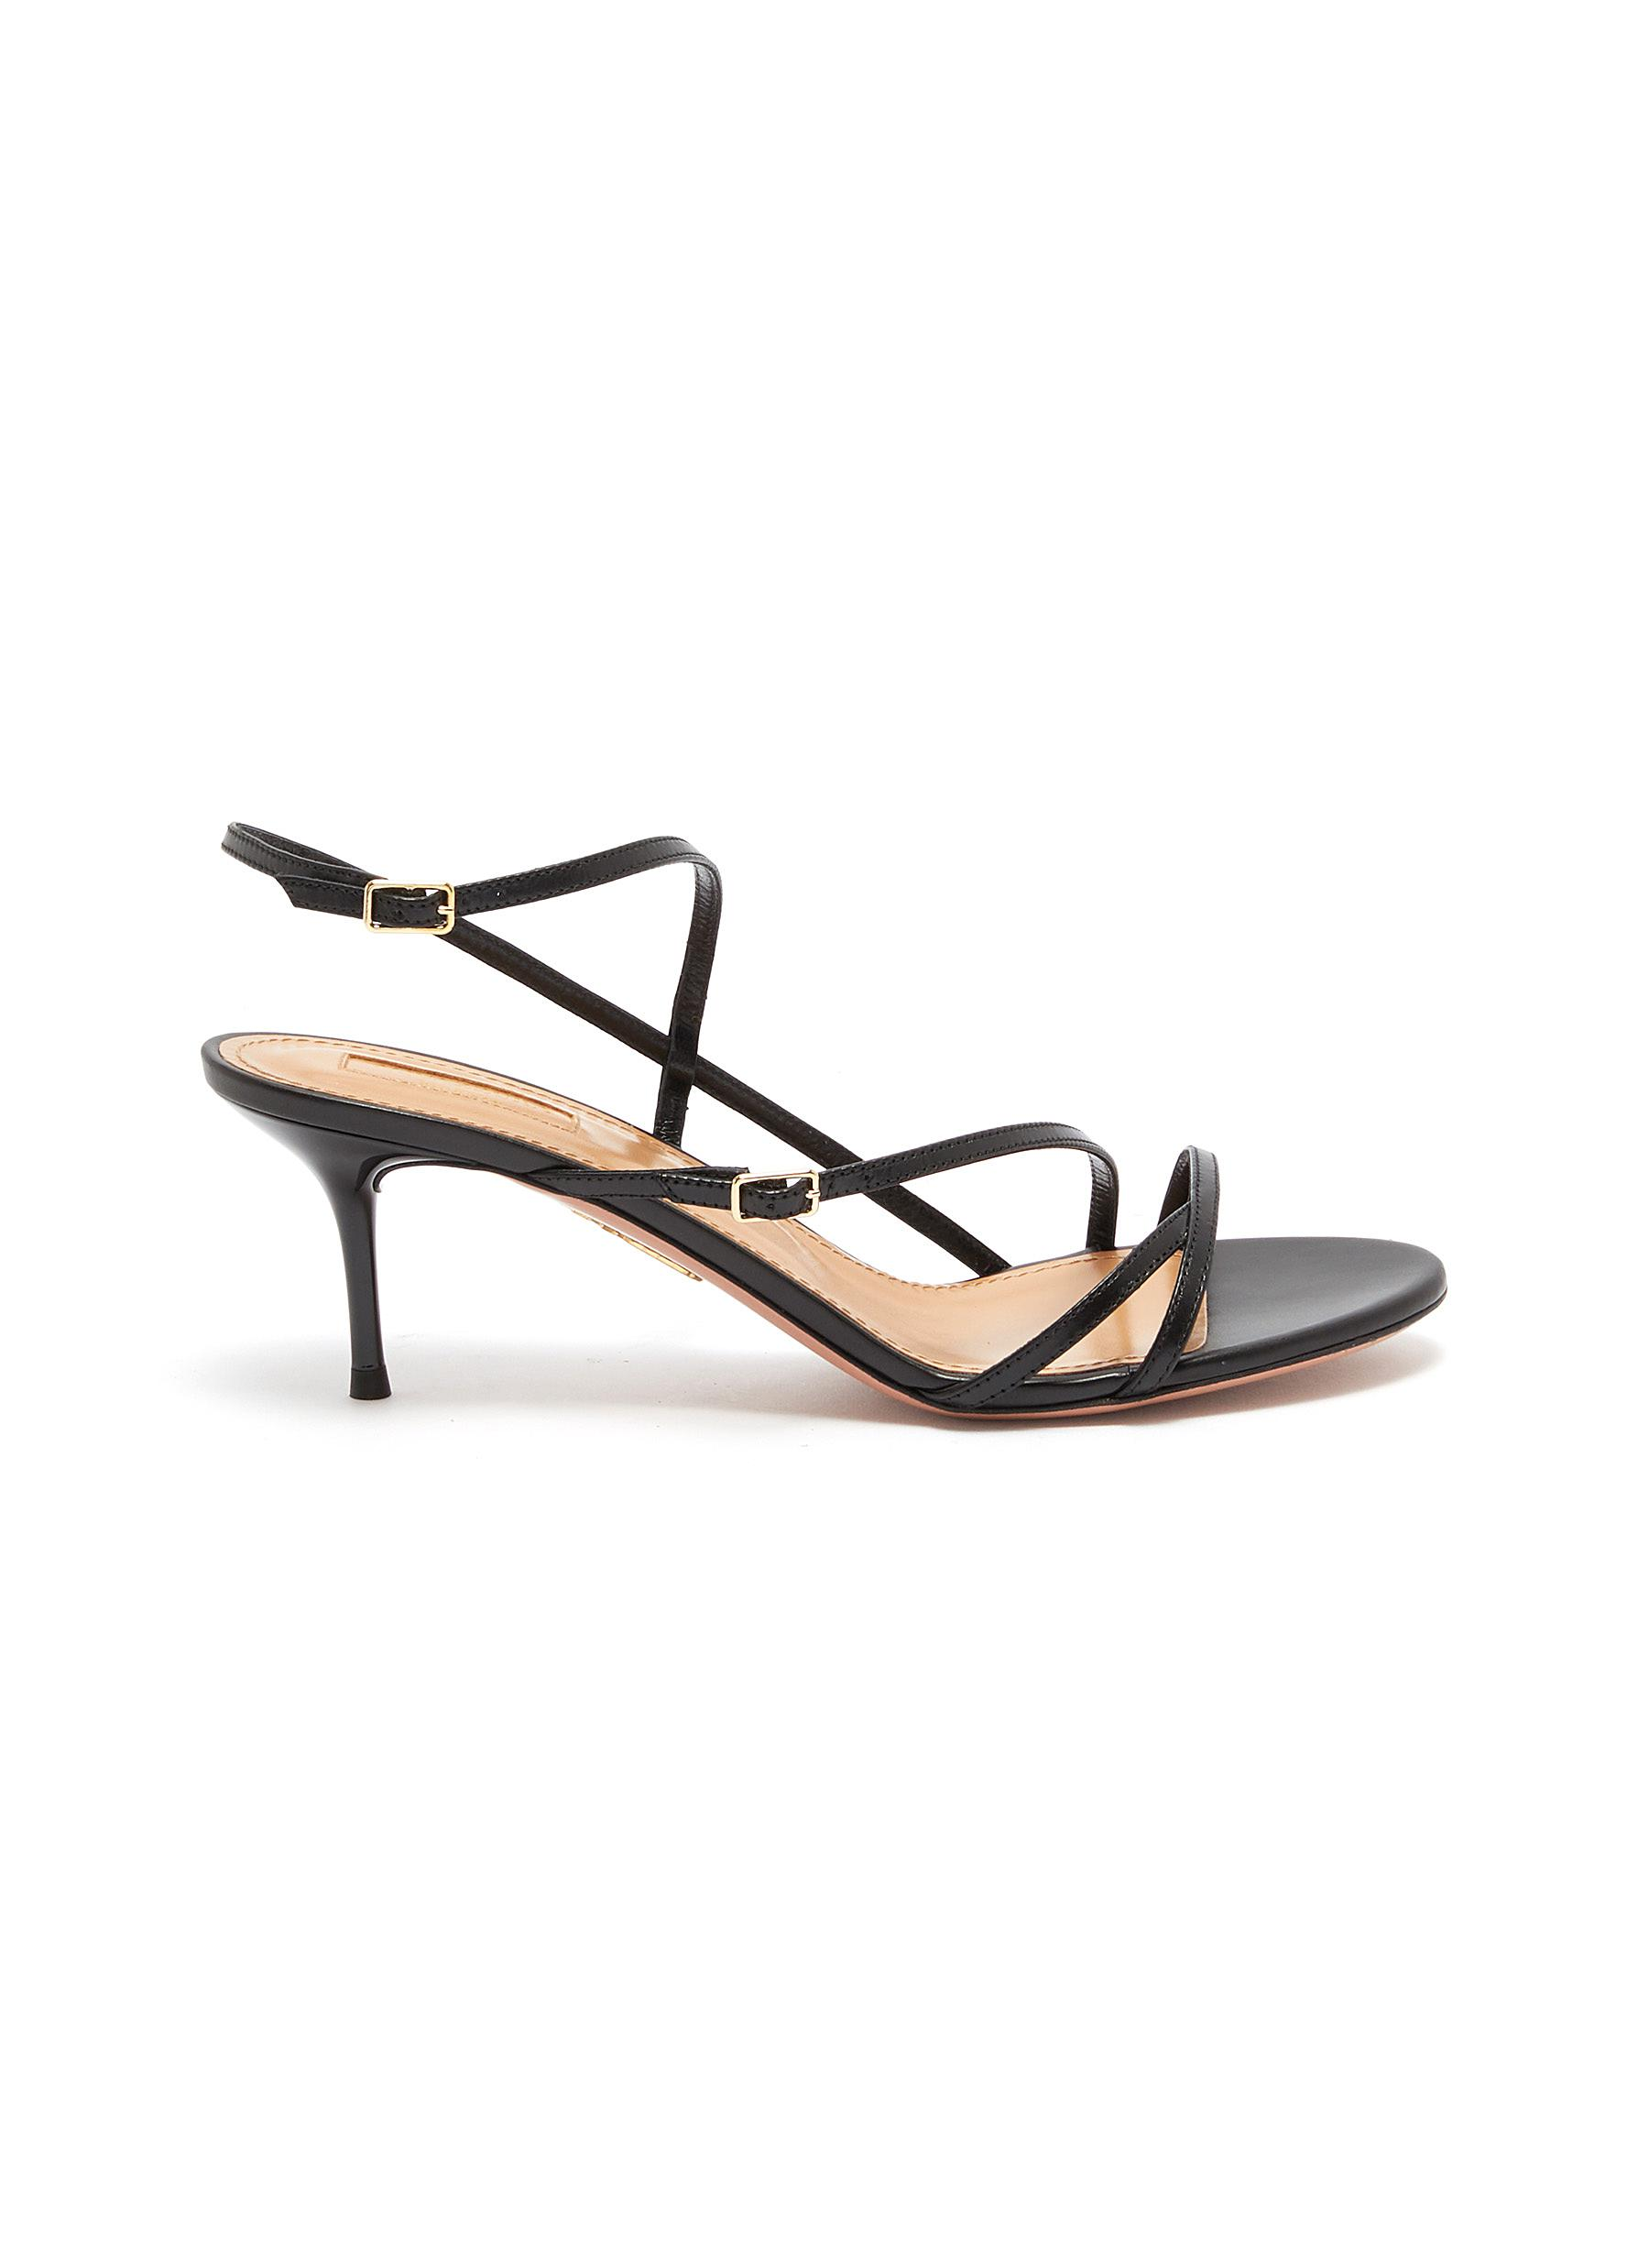 Carolyne strappy leather sandals by Aquazzura